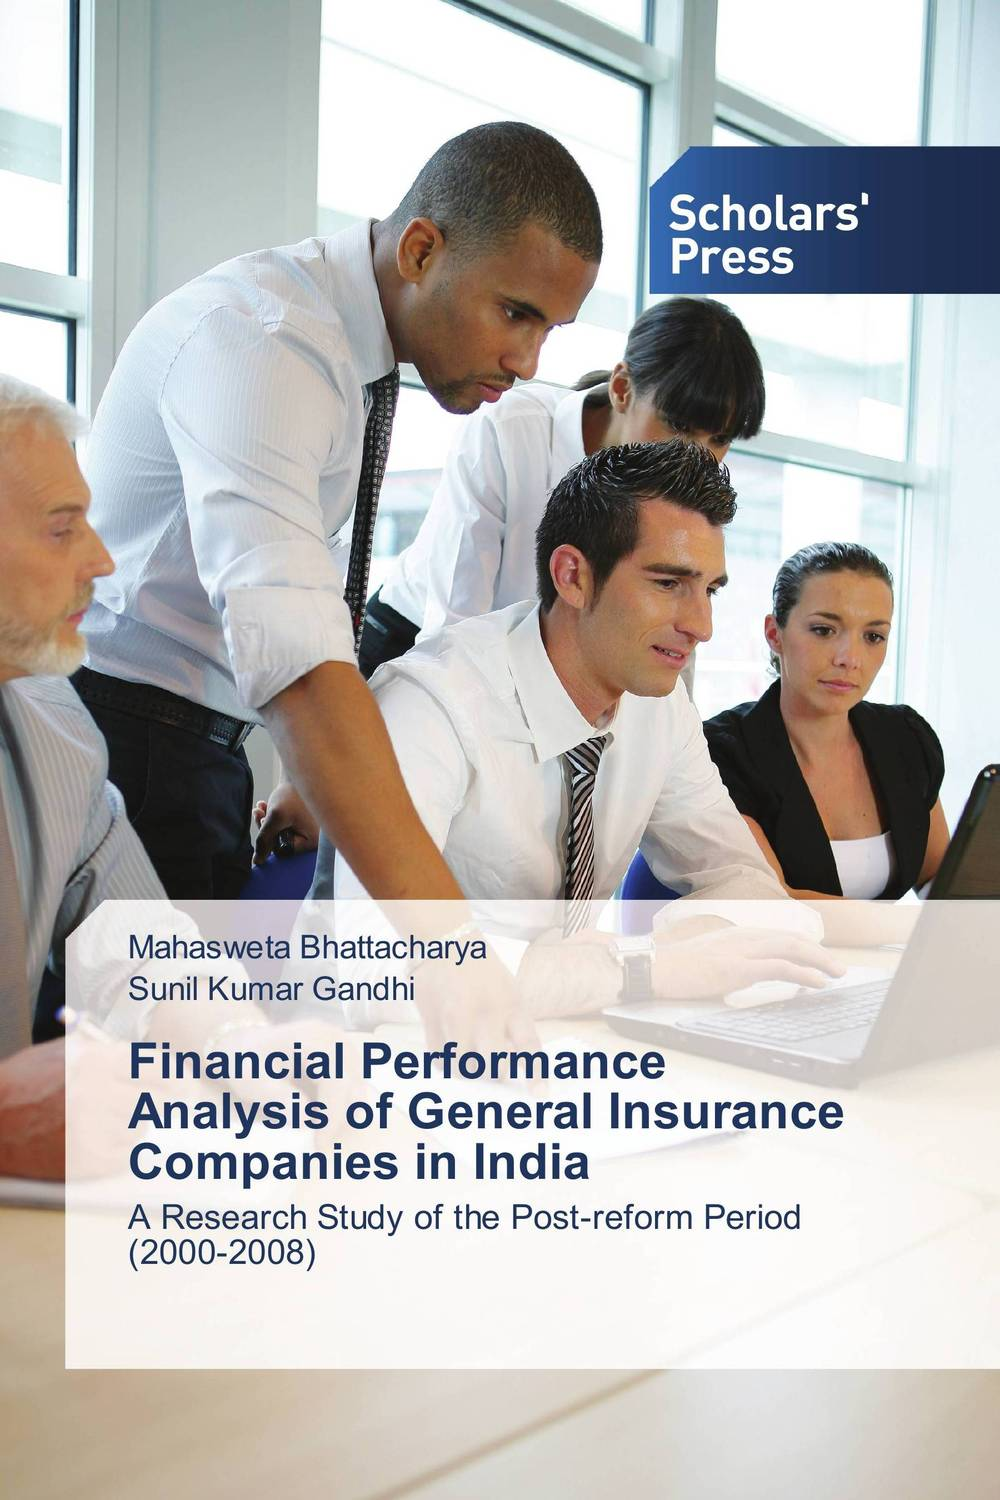 Financial Performance Analysis of General Insurance Companies in India financial performance analysis of general insurance companies in india